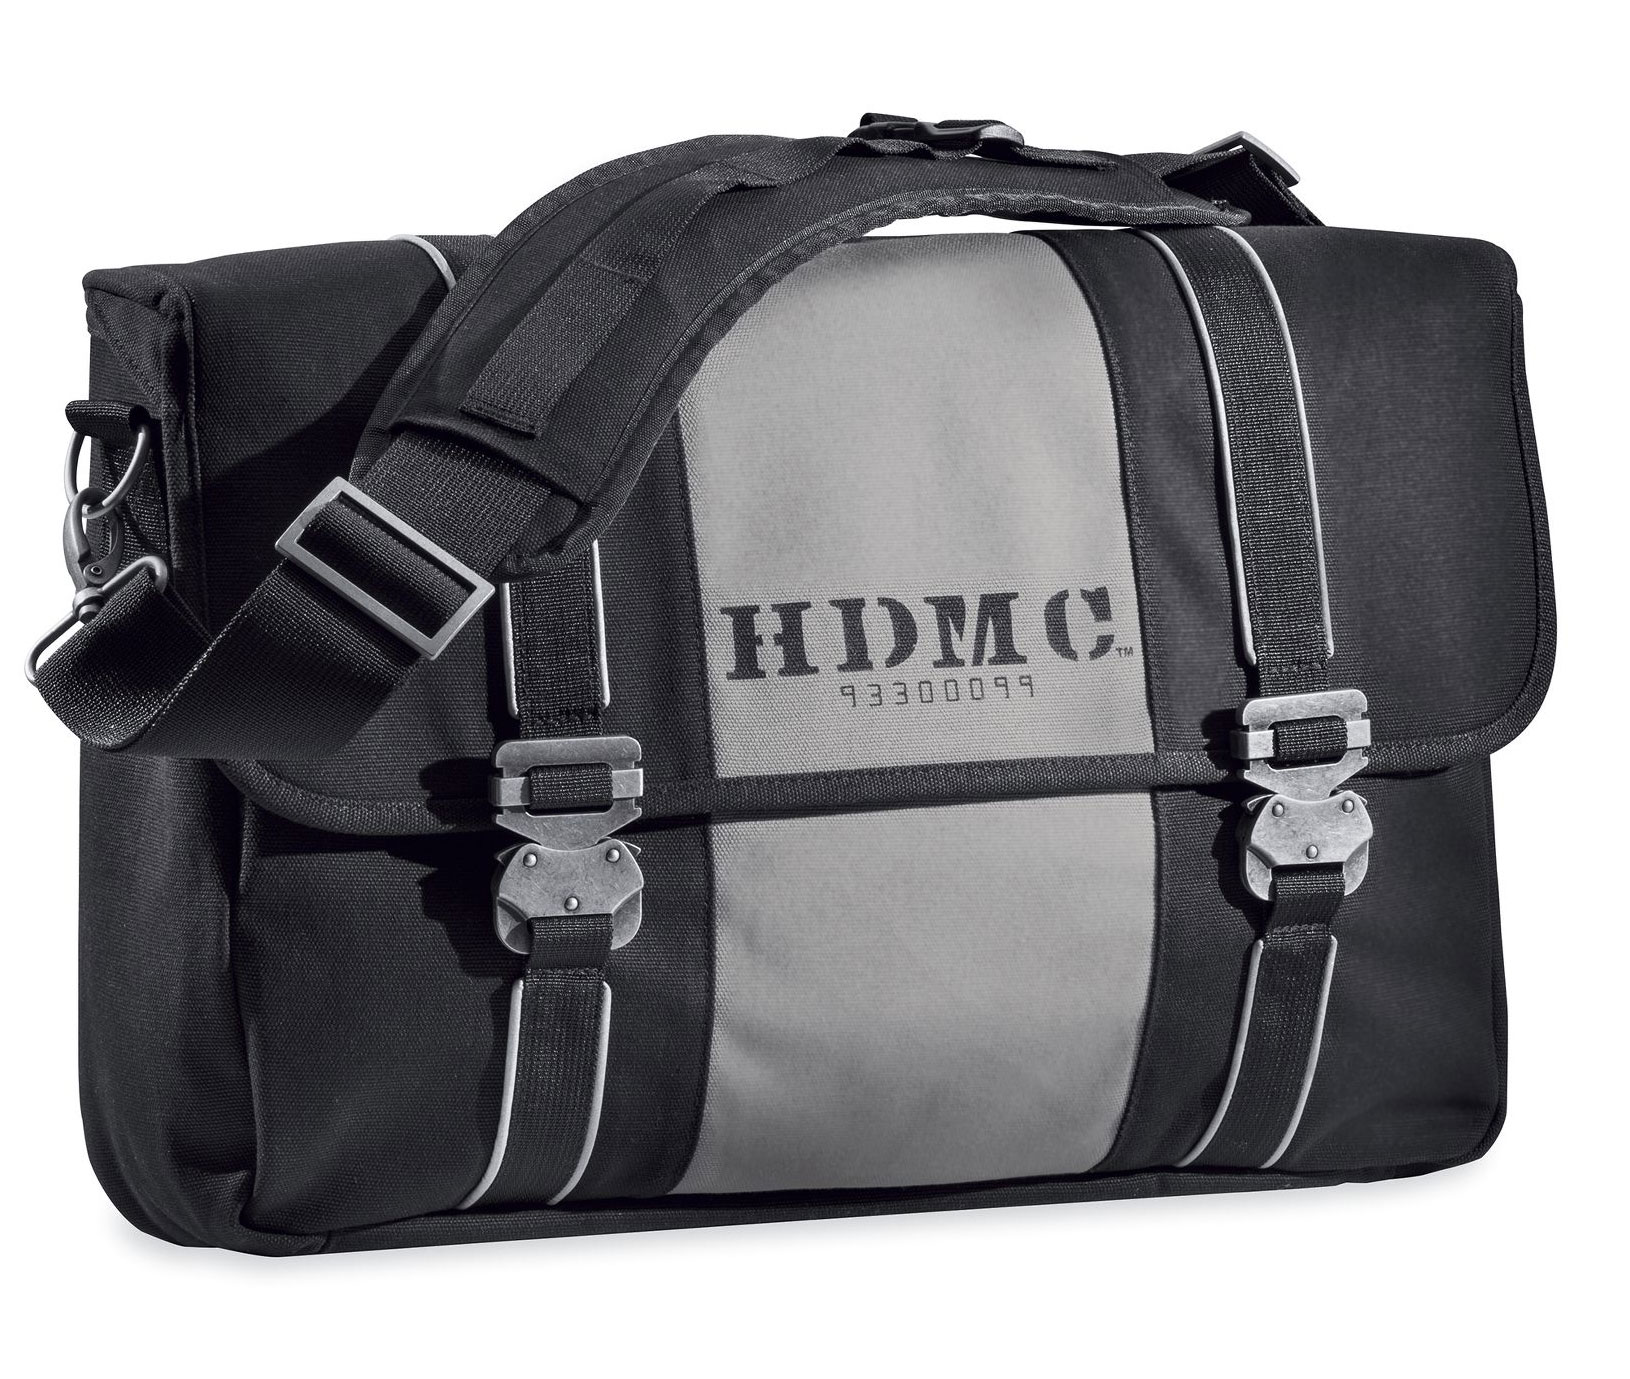 HDMC MESSENGER BAG – BLACK/SIL